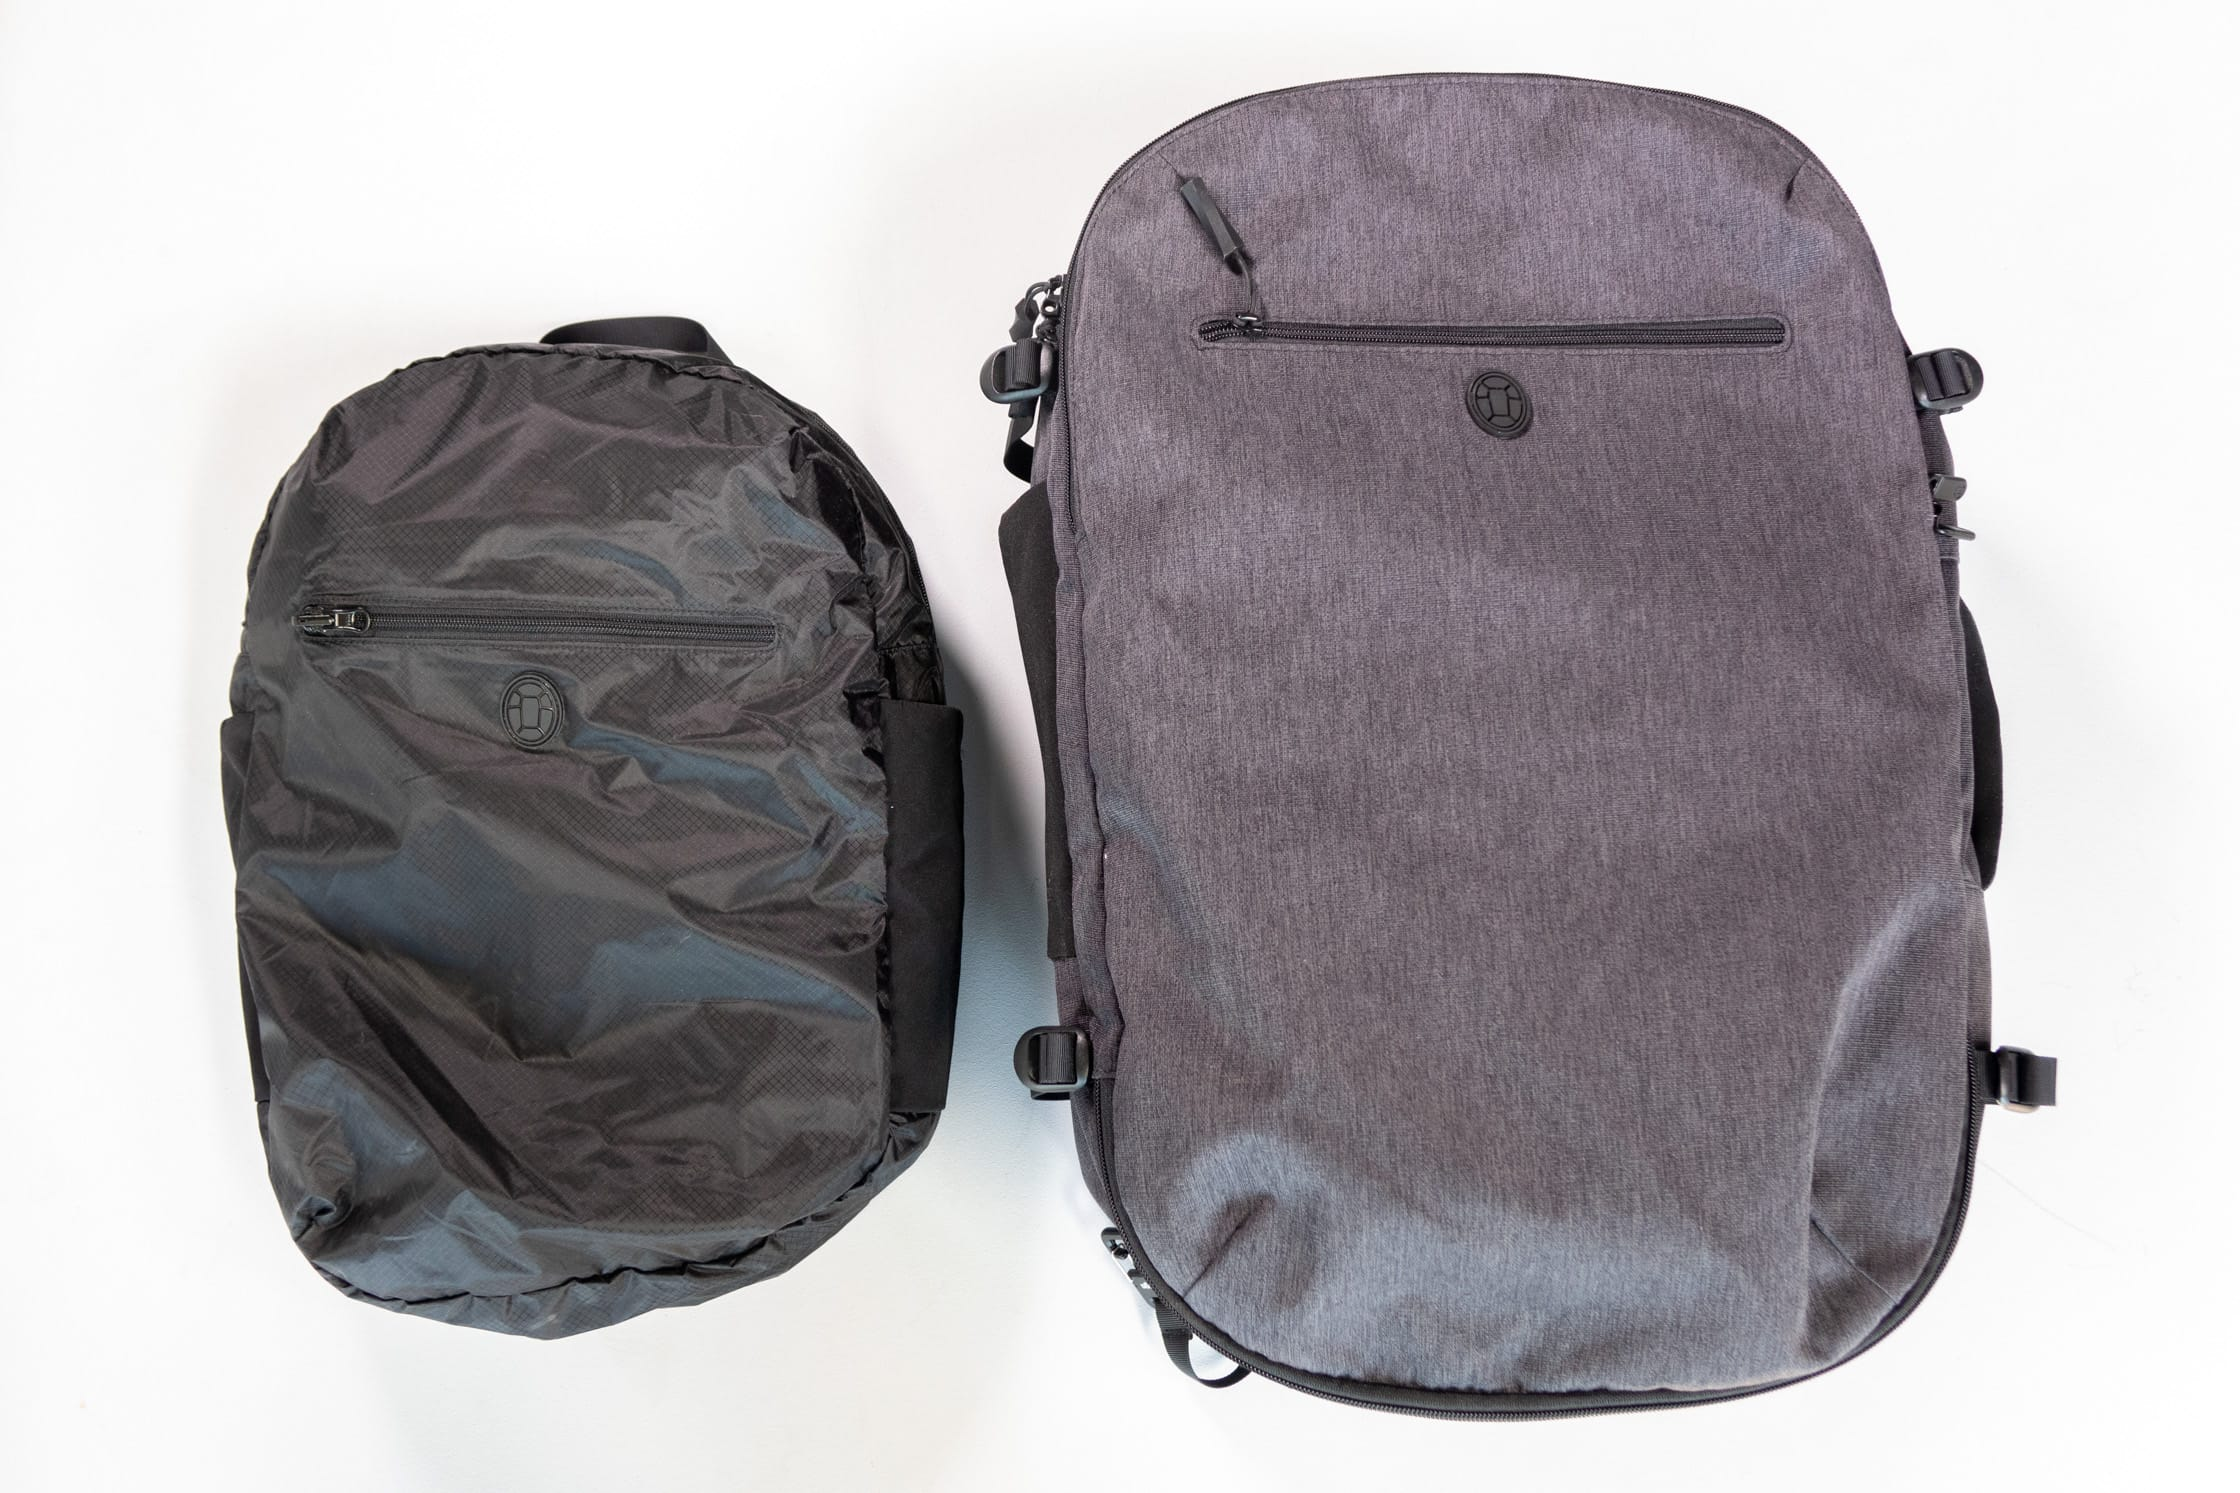 Tortuga Setout Packable Daypack / Setout Comparison